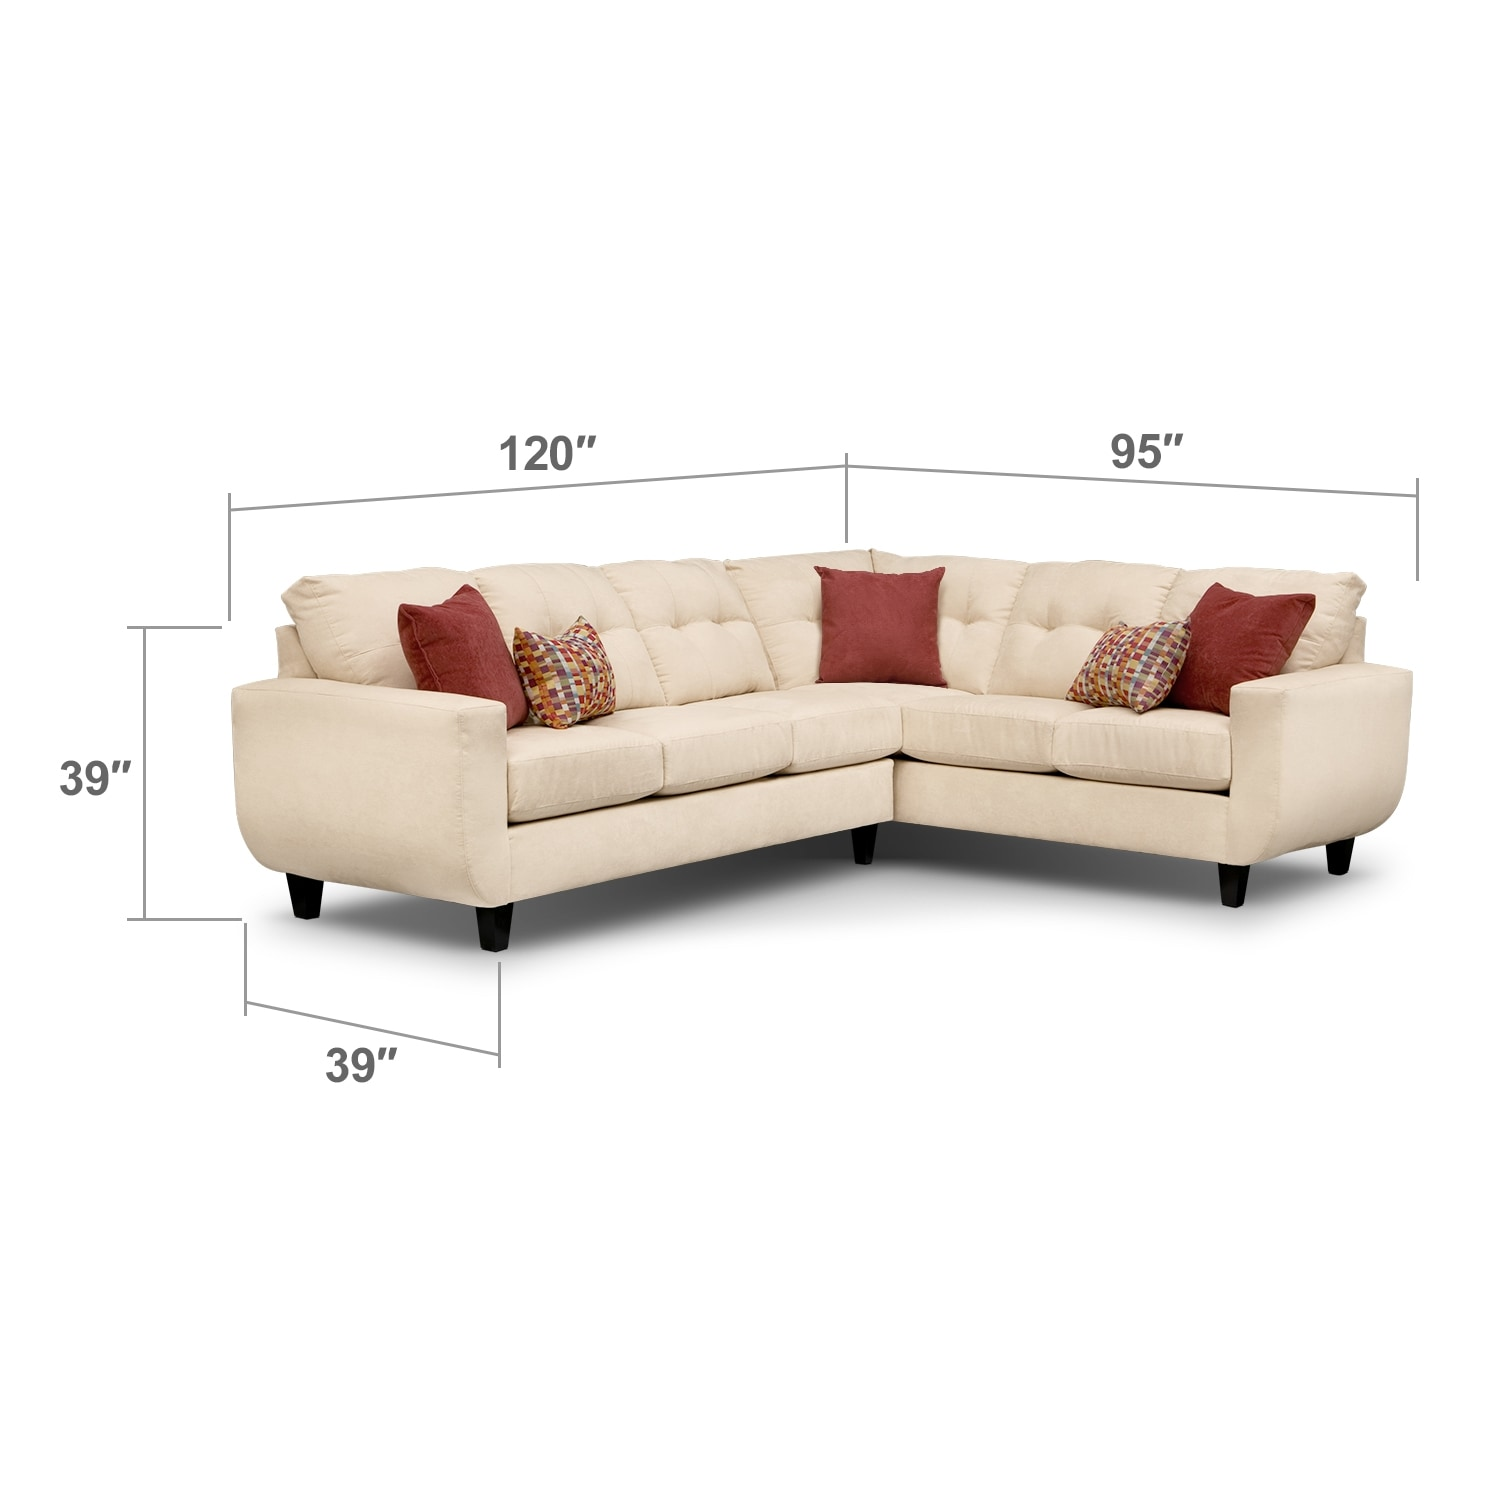 Living Room Furniture - West Village 2-Piece Sectional - Cream